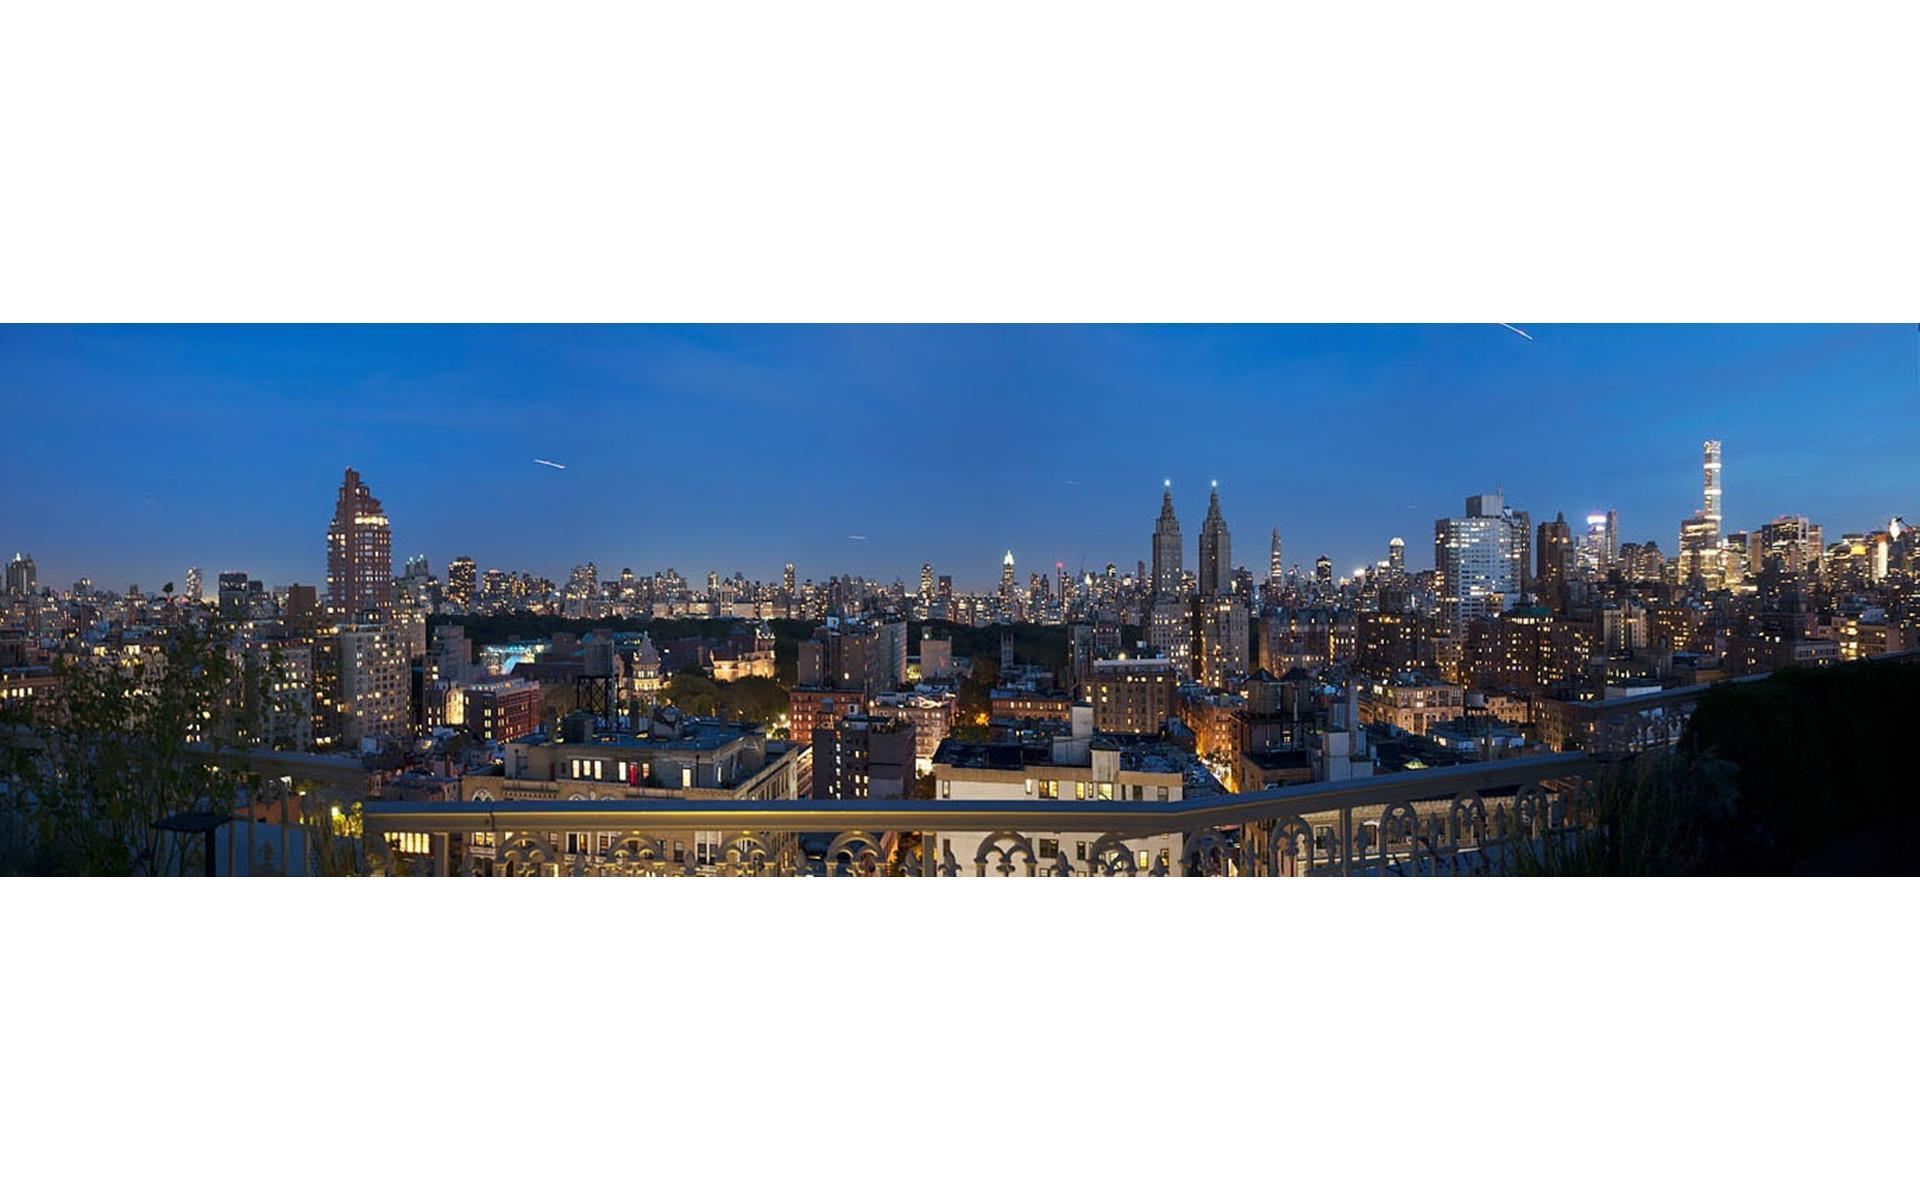 Condominium for Sale at Laureate, 2150 Broadway Ph-1a 2150 Broadway New York, New York 10025 United States